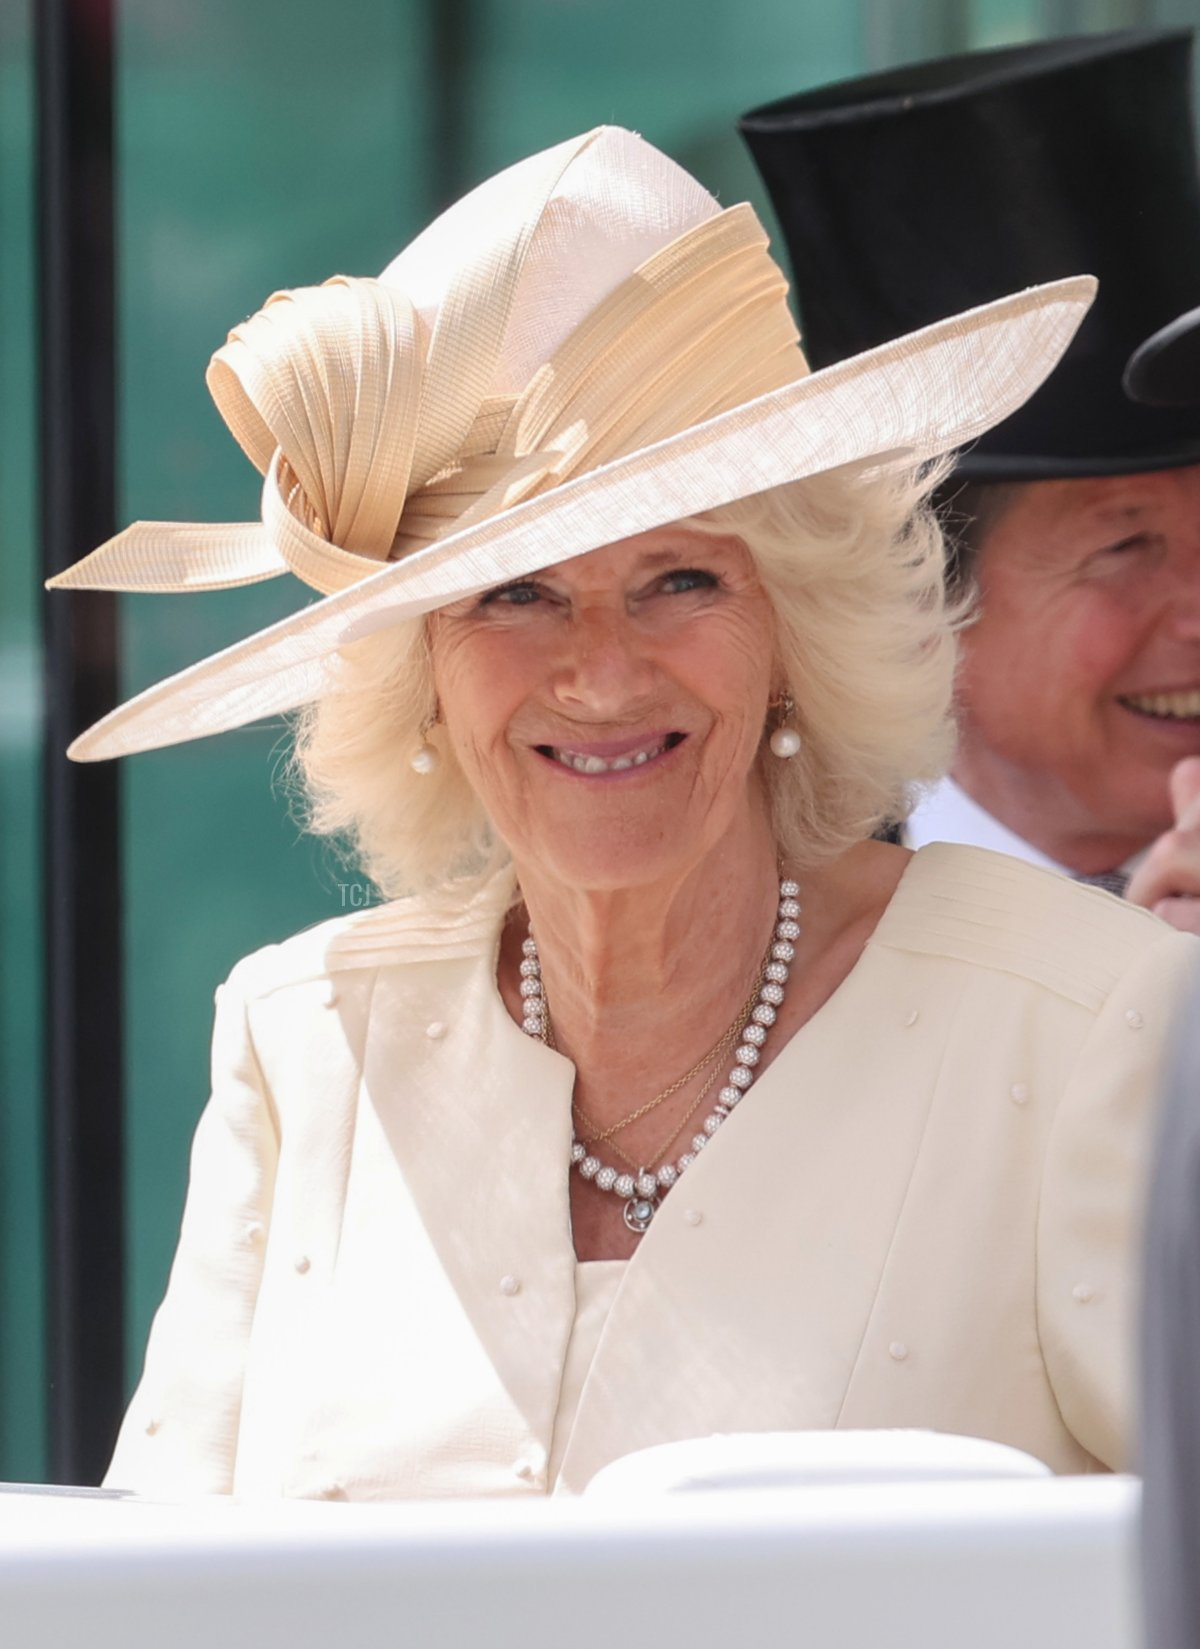 Camilla, Duchess of Cornwall attends Royal Ascot 2021 at Ascot Racecourse on June 16, 2021 in Ascot, England